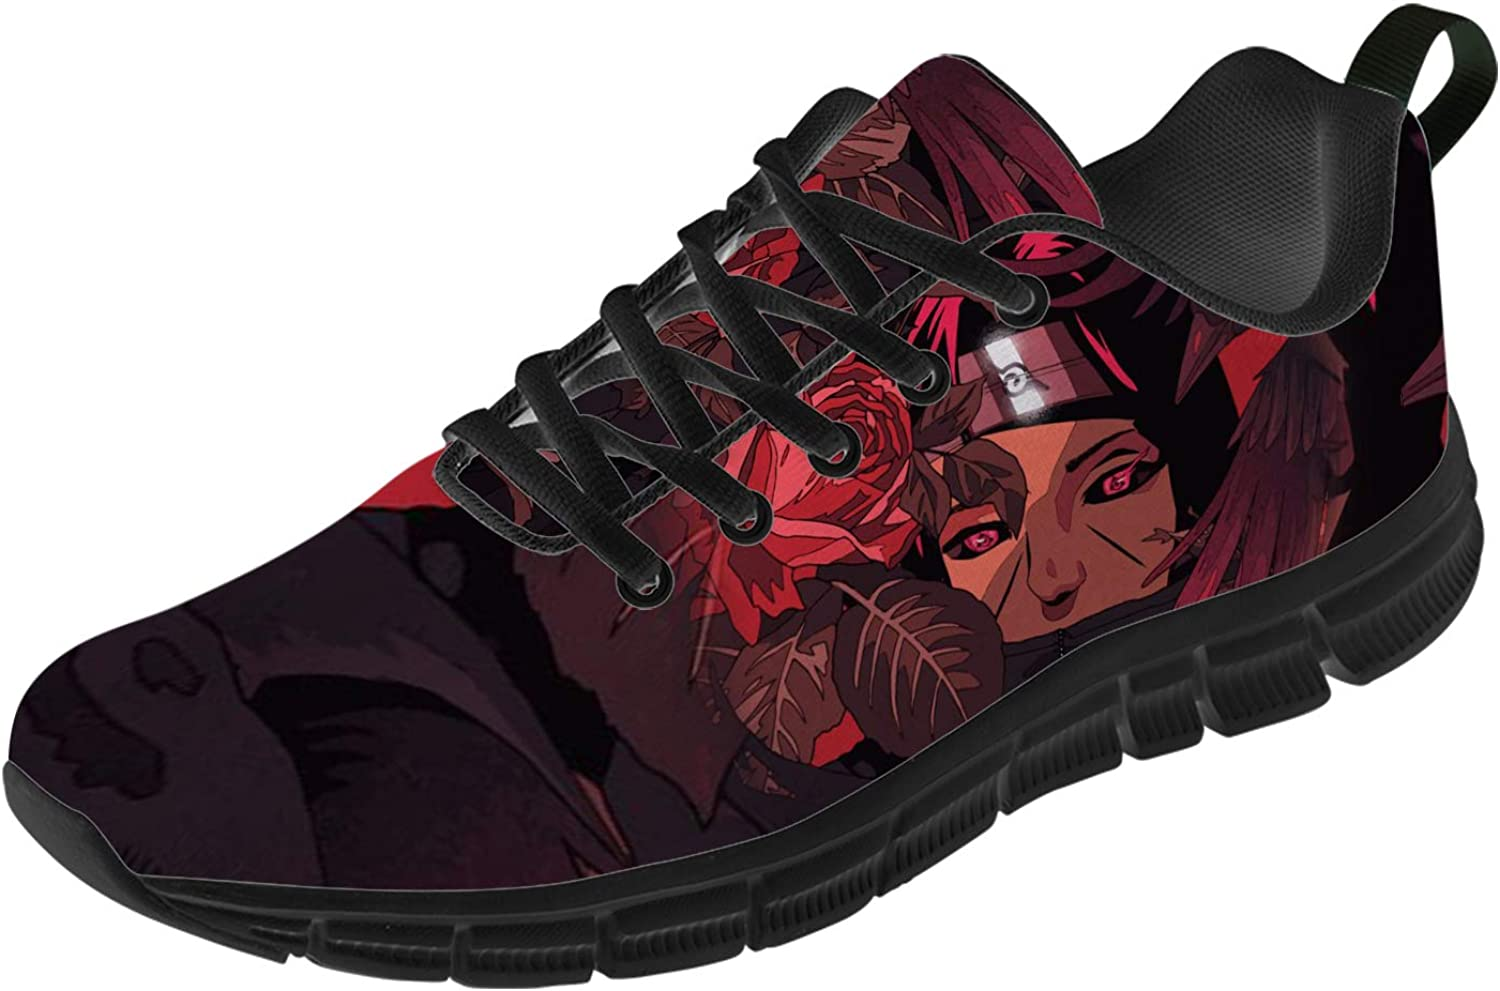 Uminder Japanese Anime Shoes for In a popularity Lightweight 3D Men Breath Purchase Print